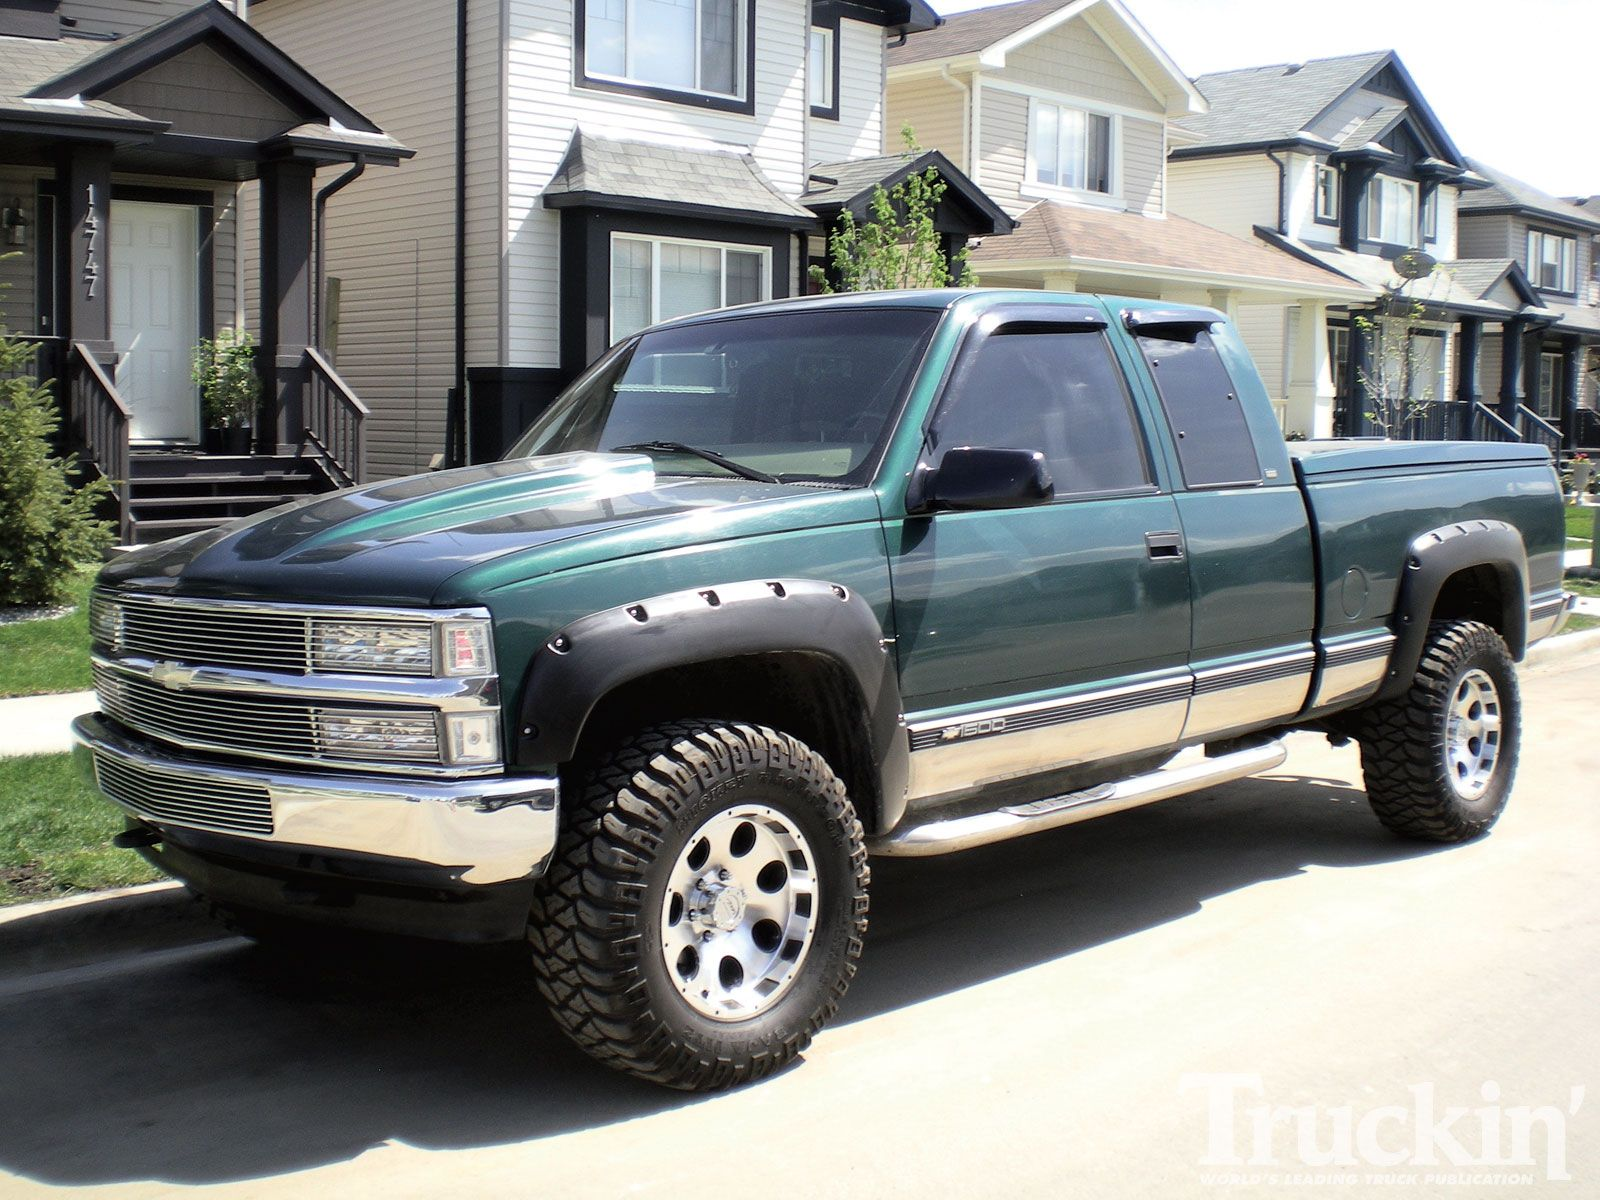 medium resolution of 98 chevy silverado parts truckin magazine readers rides 1998 chevy silverado photo 1